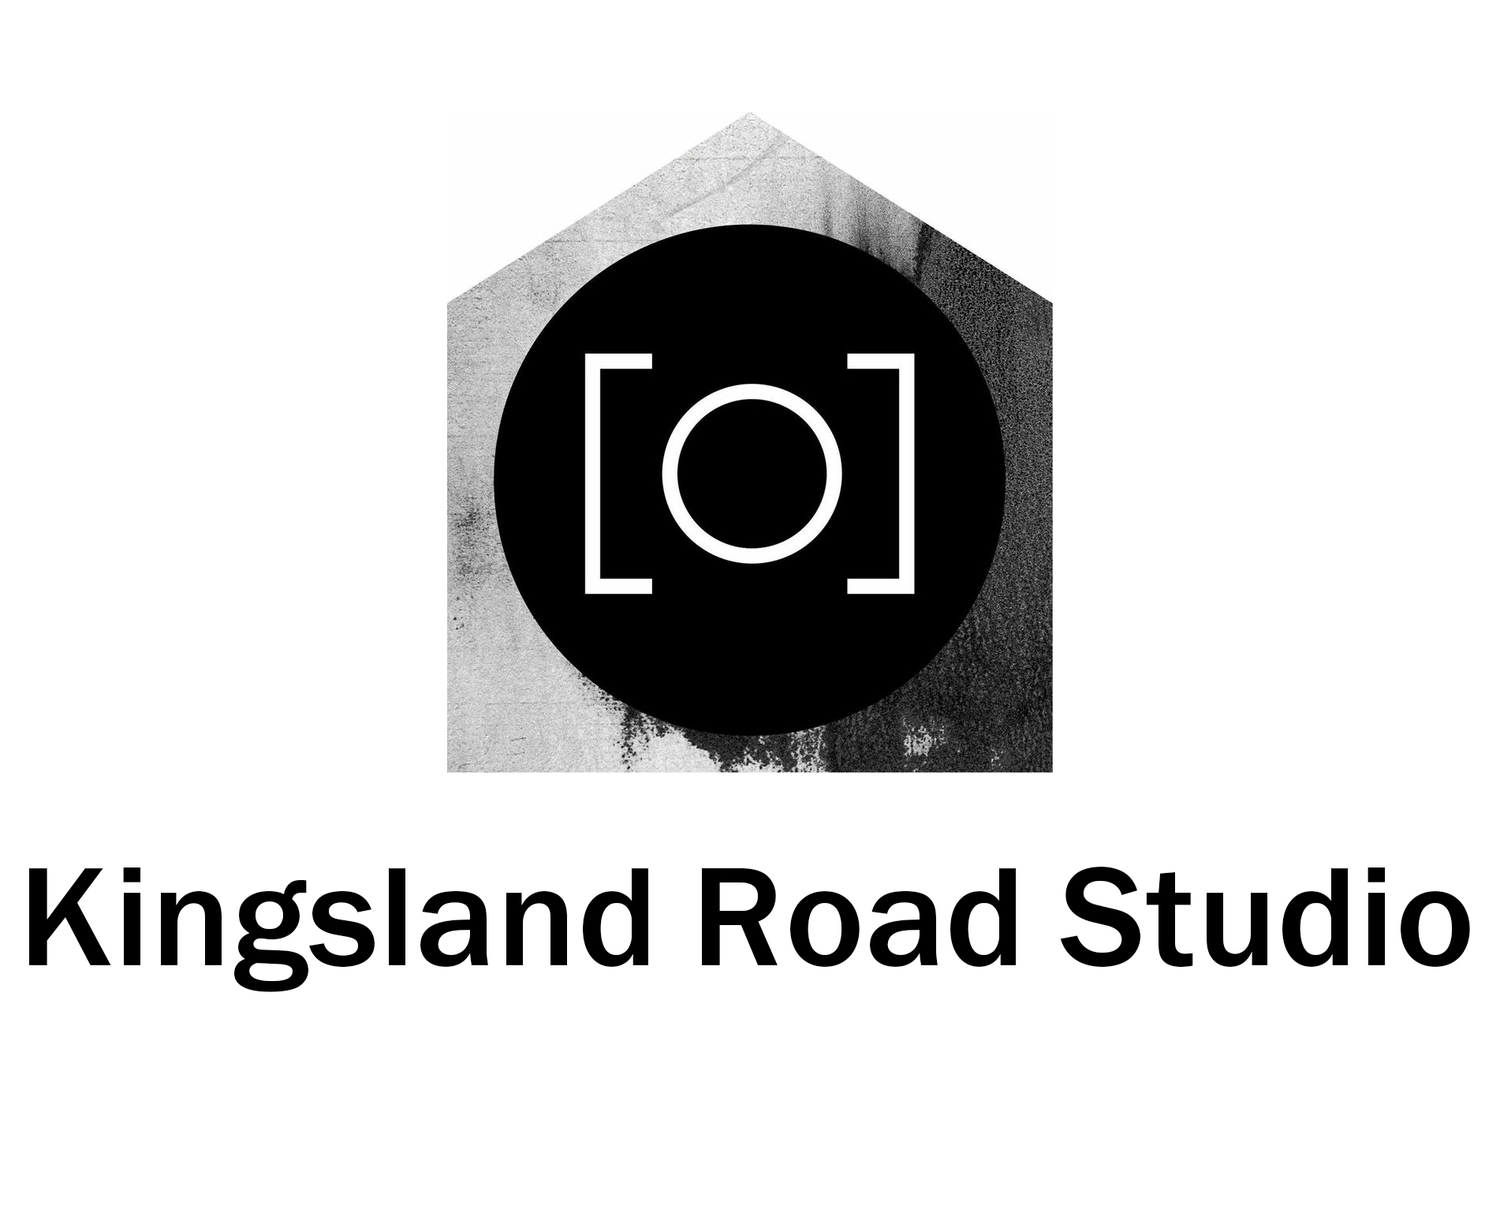 KINGSLAND ROAD STUDIO